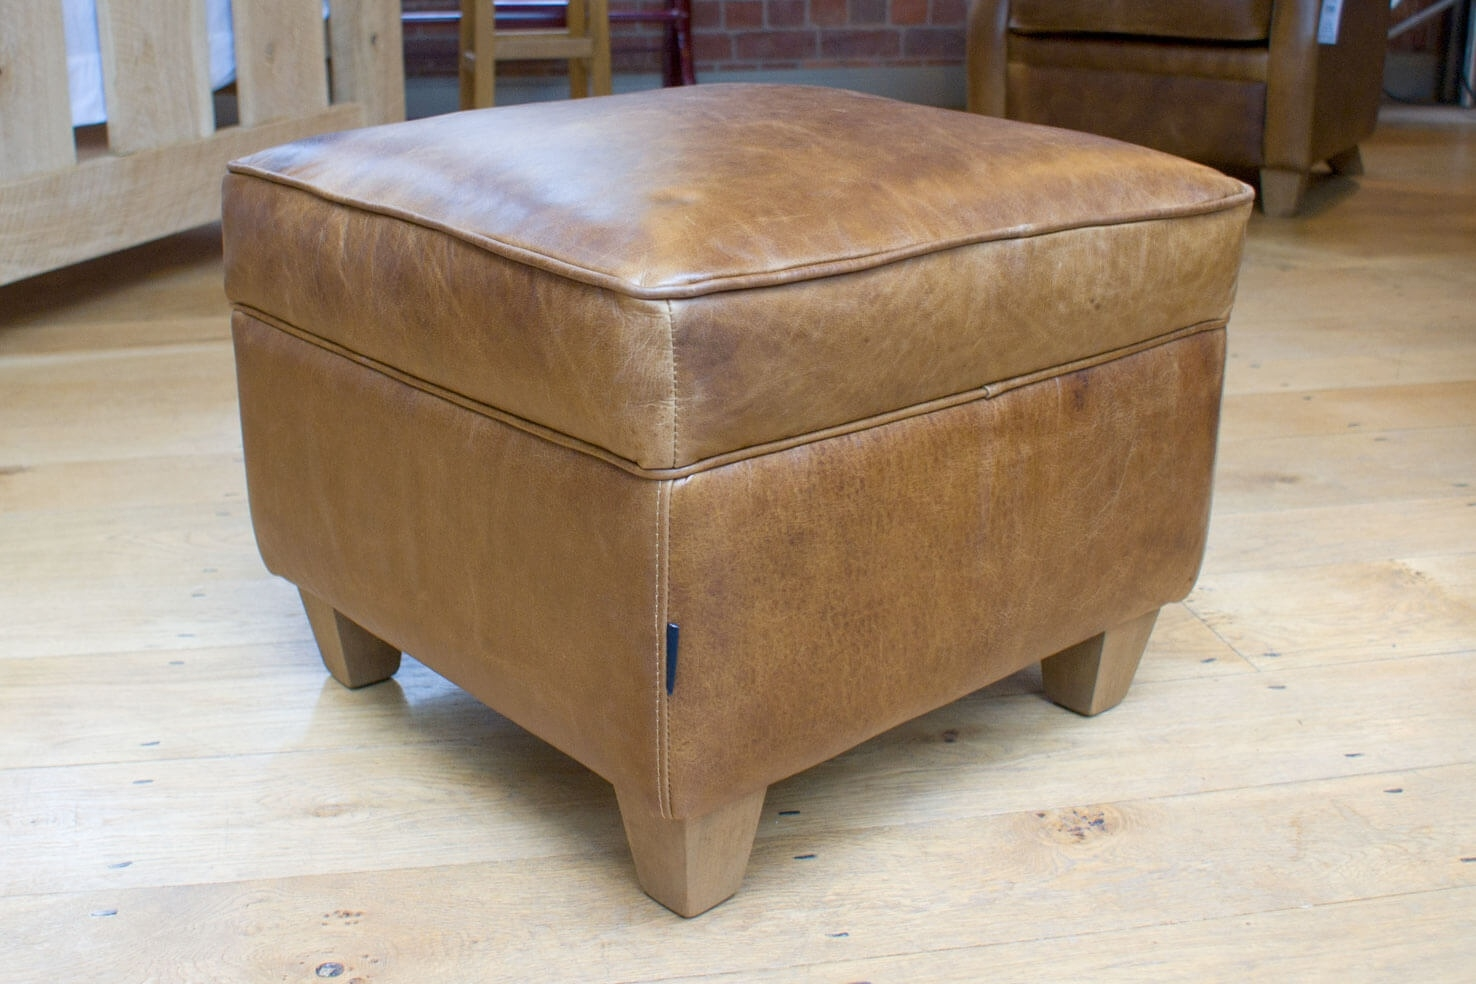 The Vintage Leather Footstool Indigo Furniture Intended For Leather Footstools (Image 12 of 15)